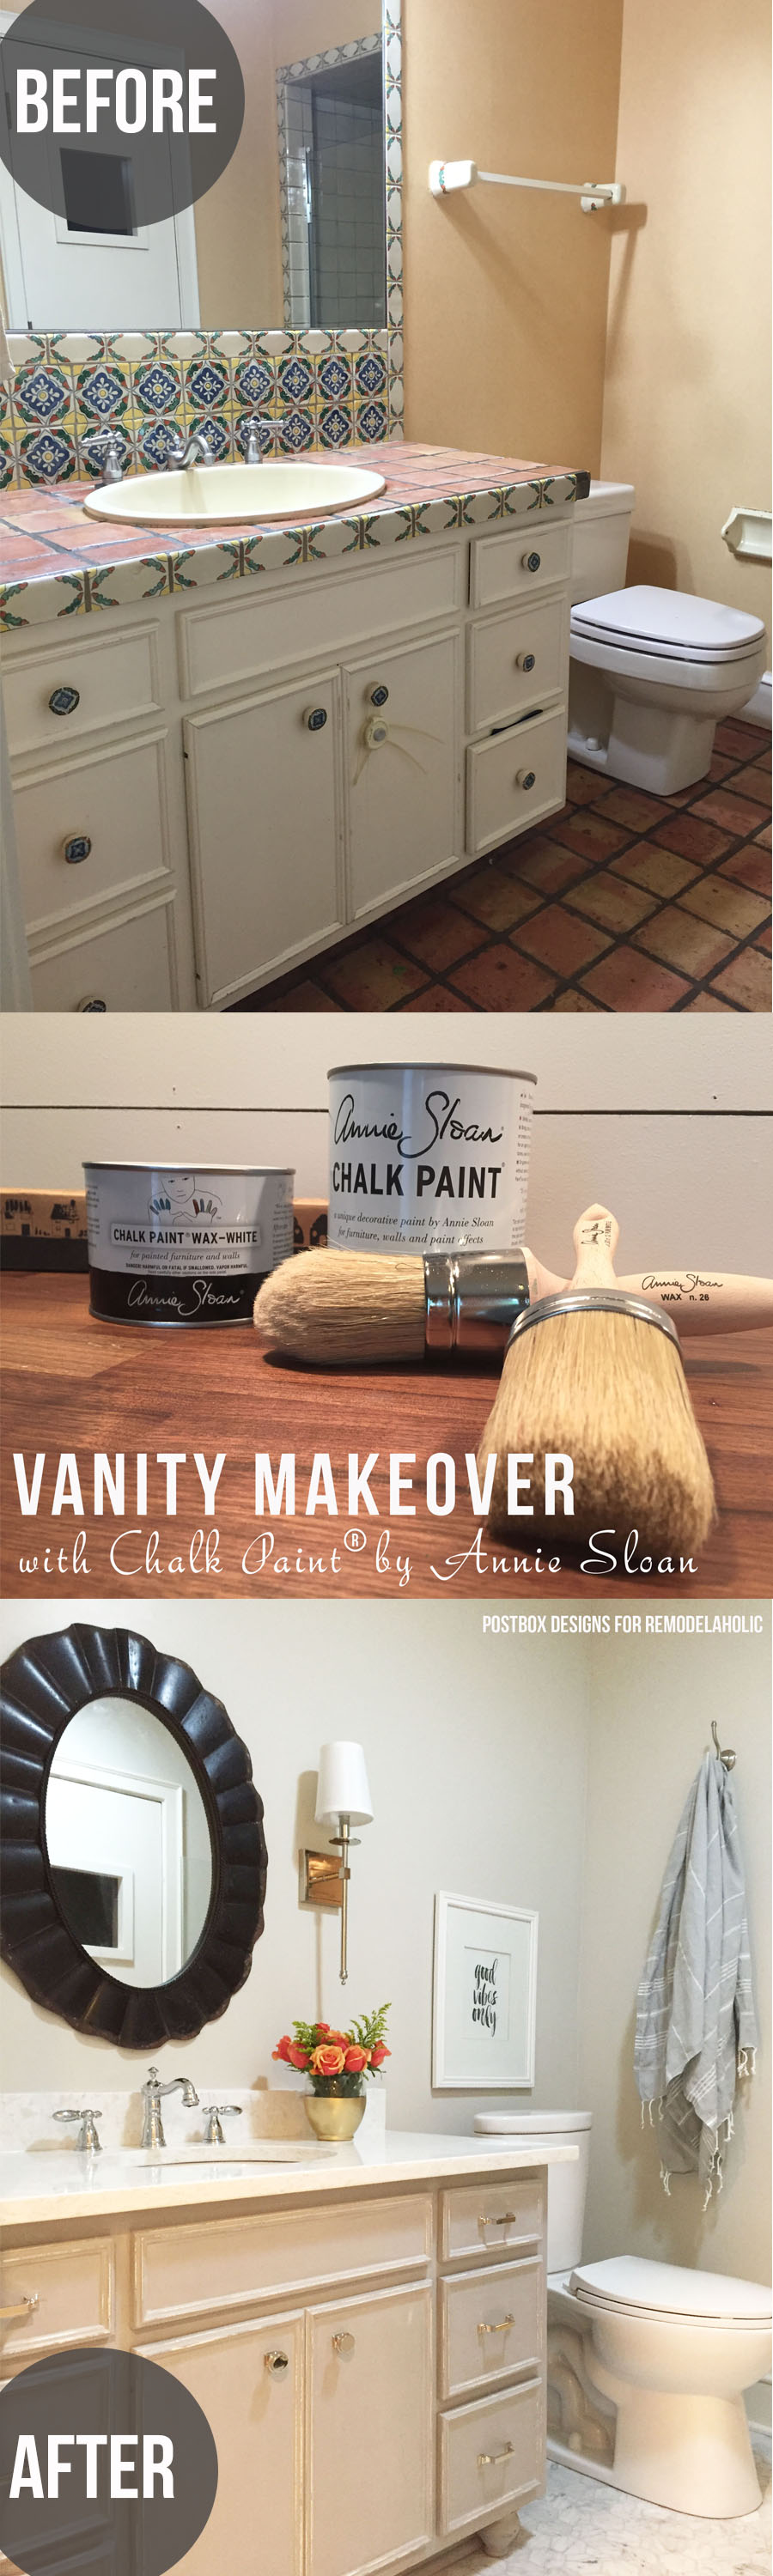 Bathroom Vanity Paint Ideas remodelaholic | chalk paint® bathroom vanity makeover!